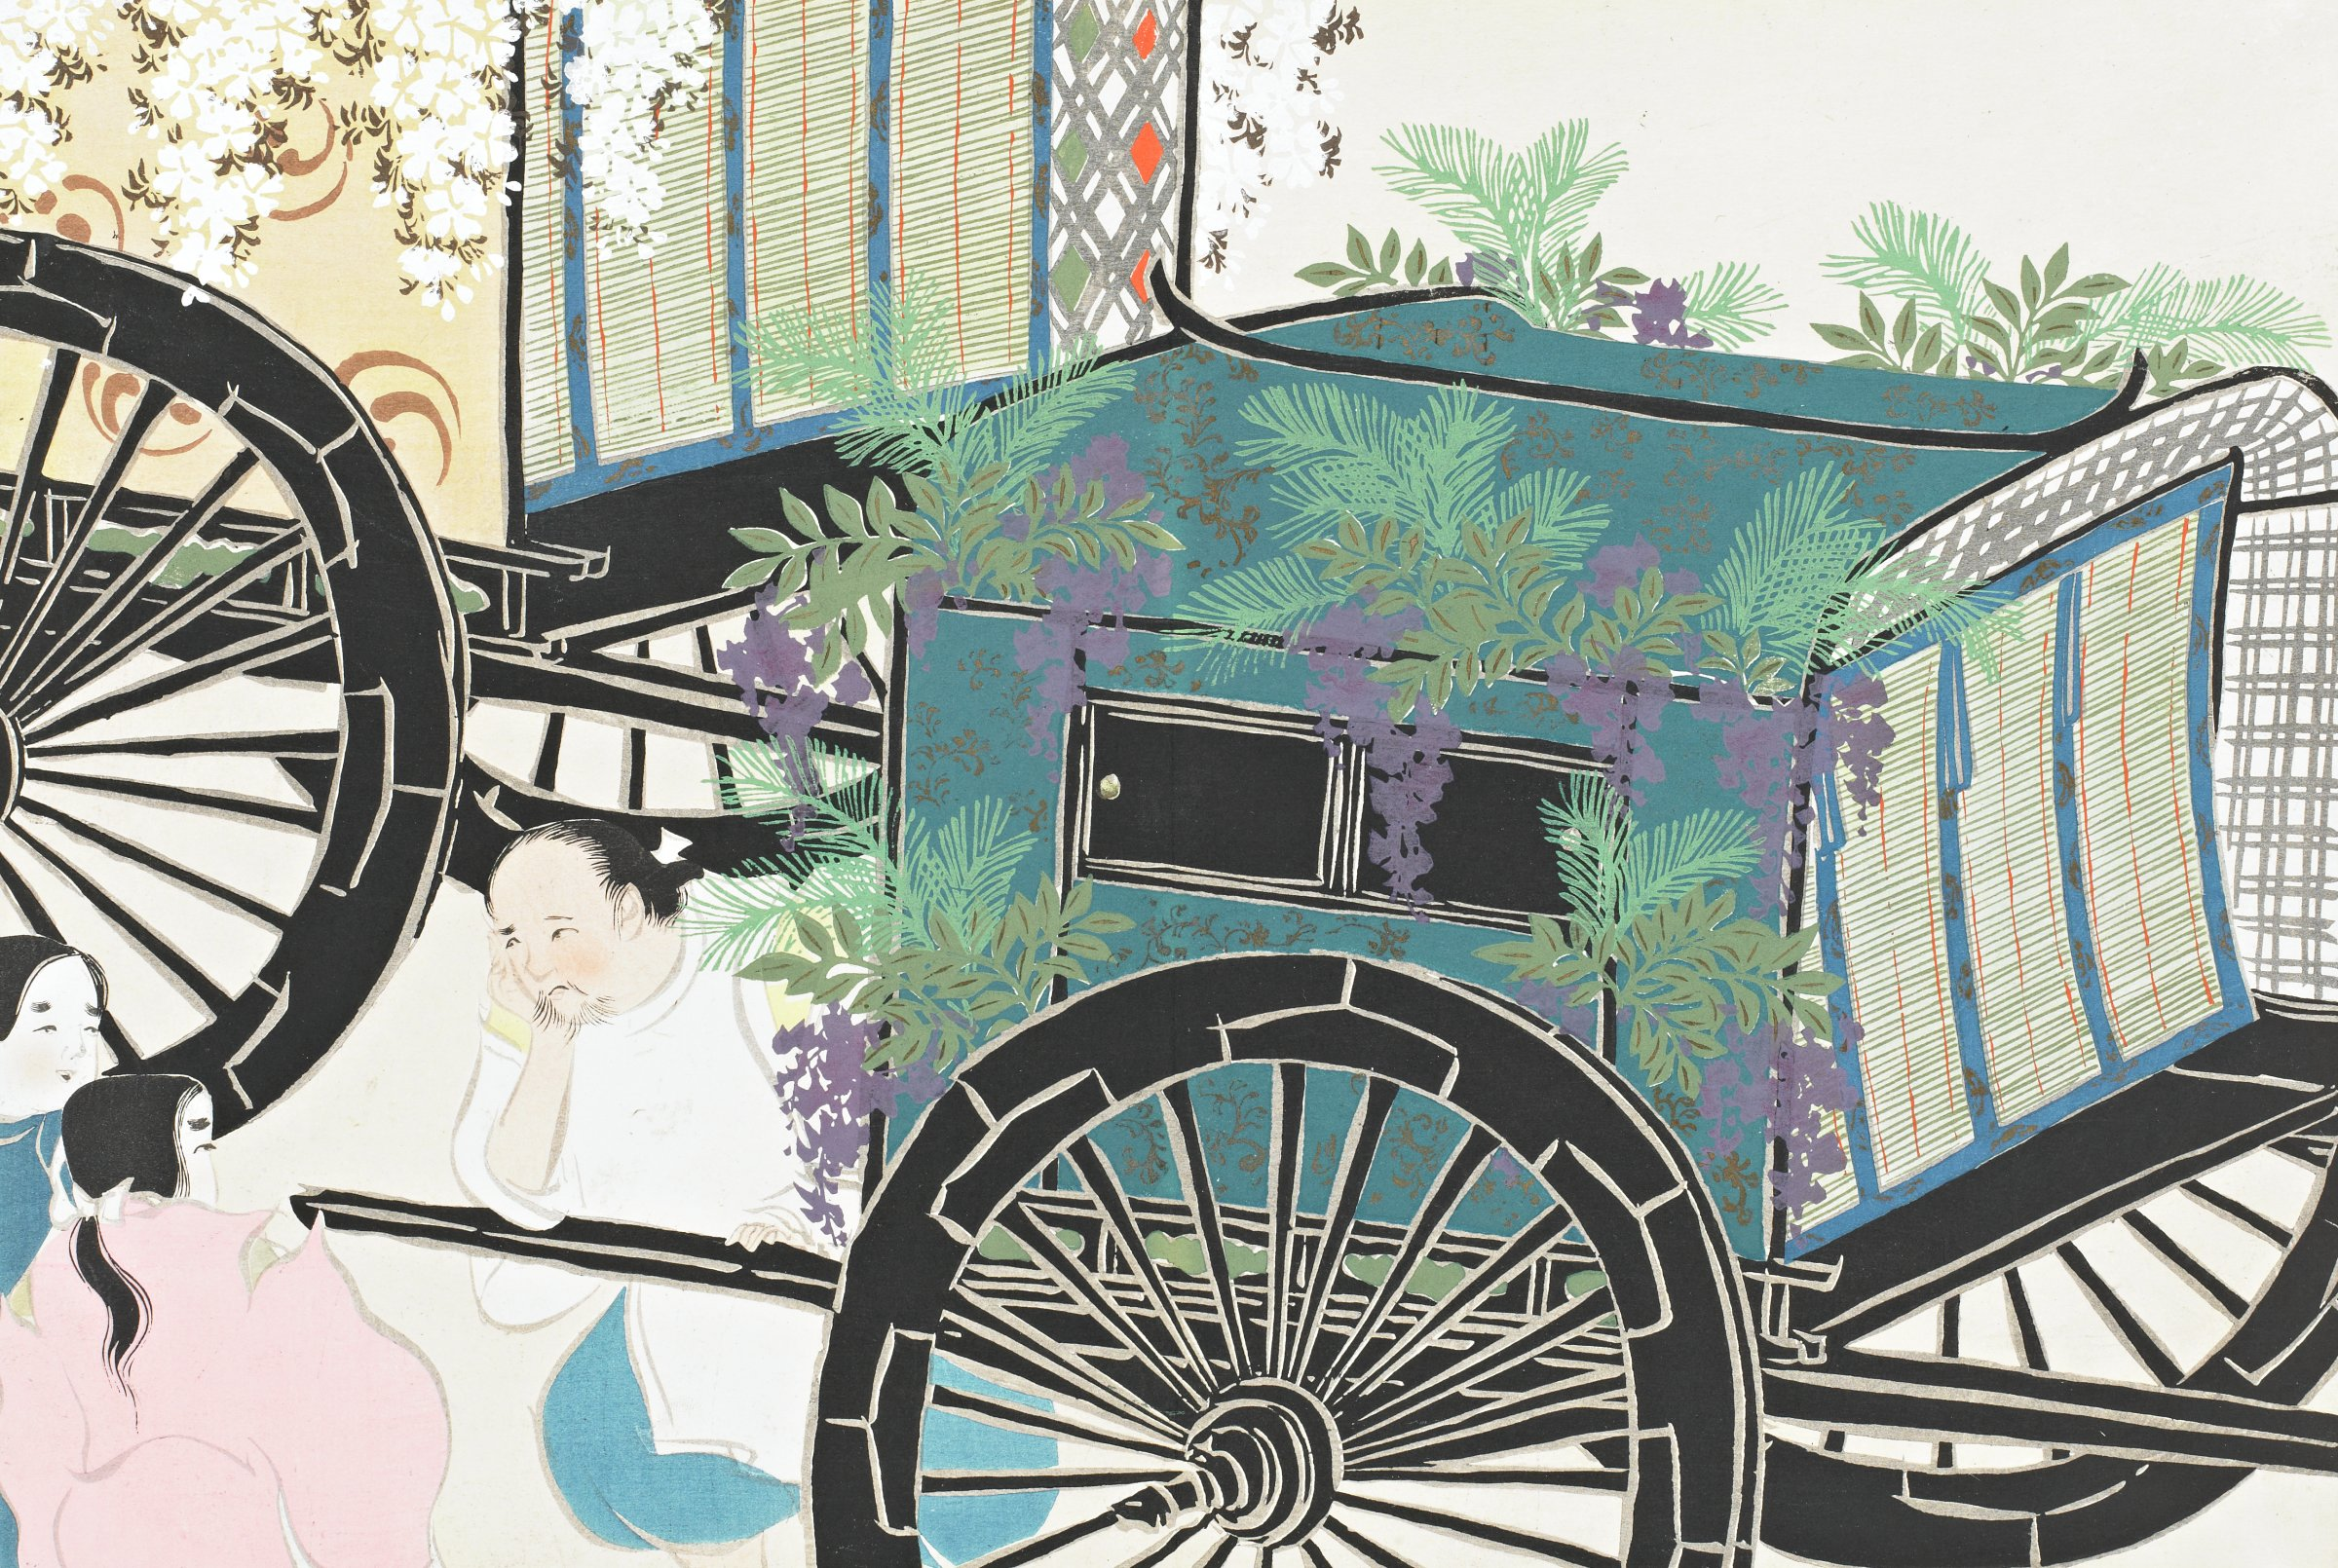 Hanasaku-guruma (Carriages Decorated with Flowers), from Momoyogusa (A World of Things), Volume 2, Kamisaka Sekka, ink and color on paper